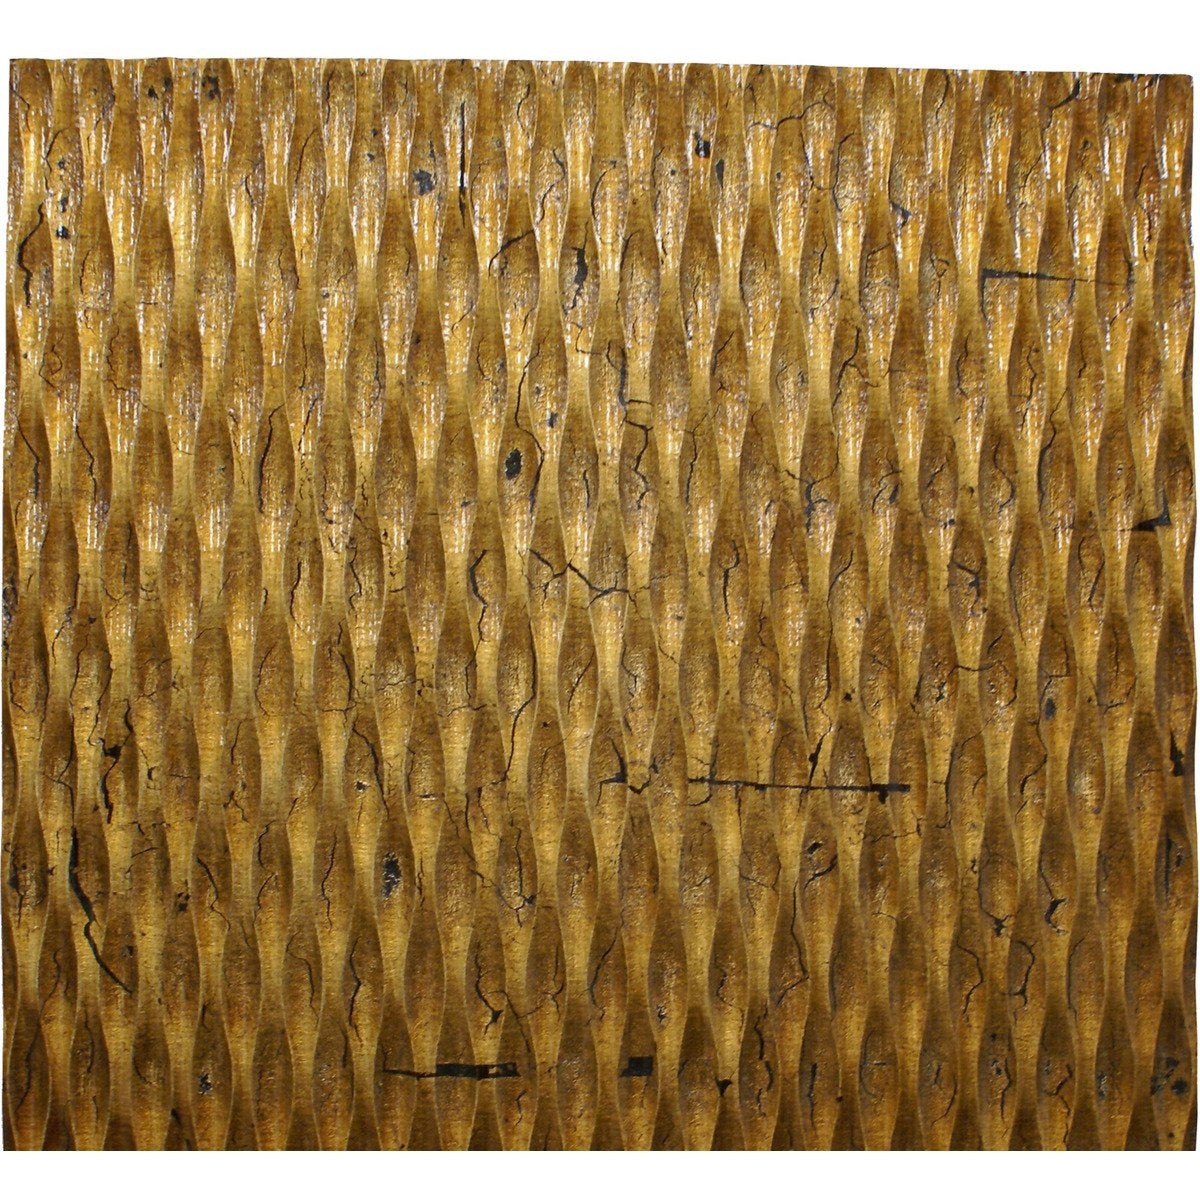 Canvas Art - Modern Style Wooden Wall Decor With Patterned Carving, Small, Gold